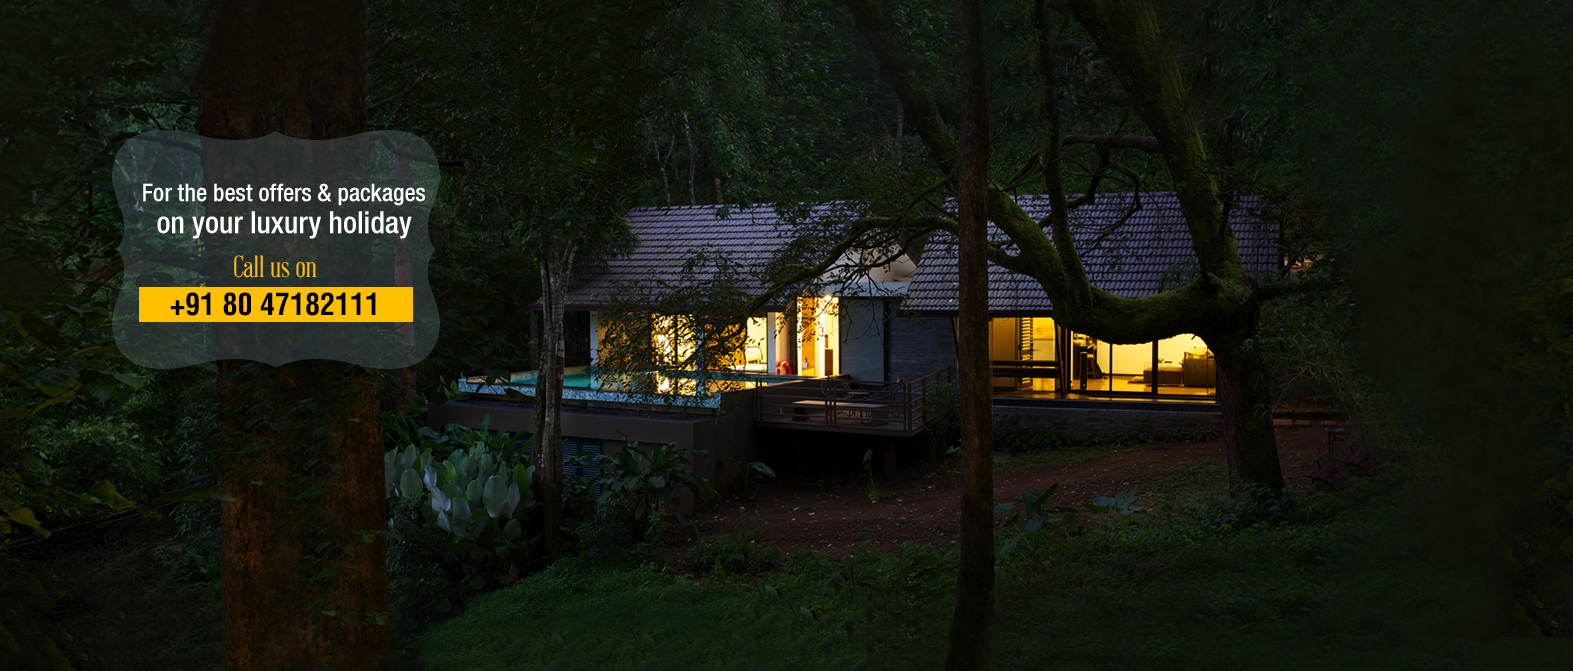 The IBNII Coorg